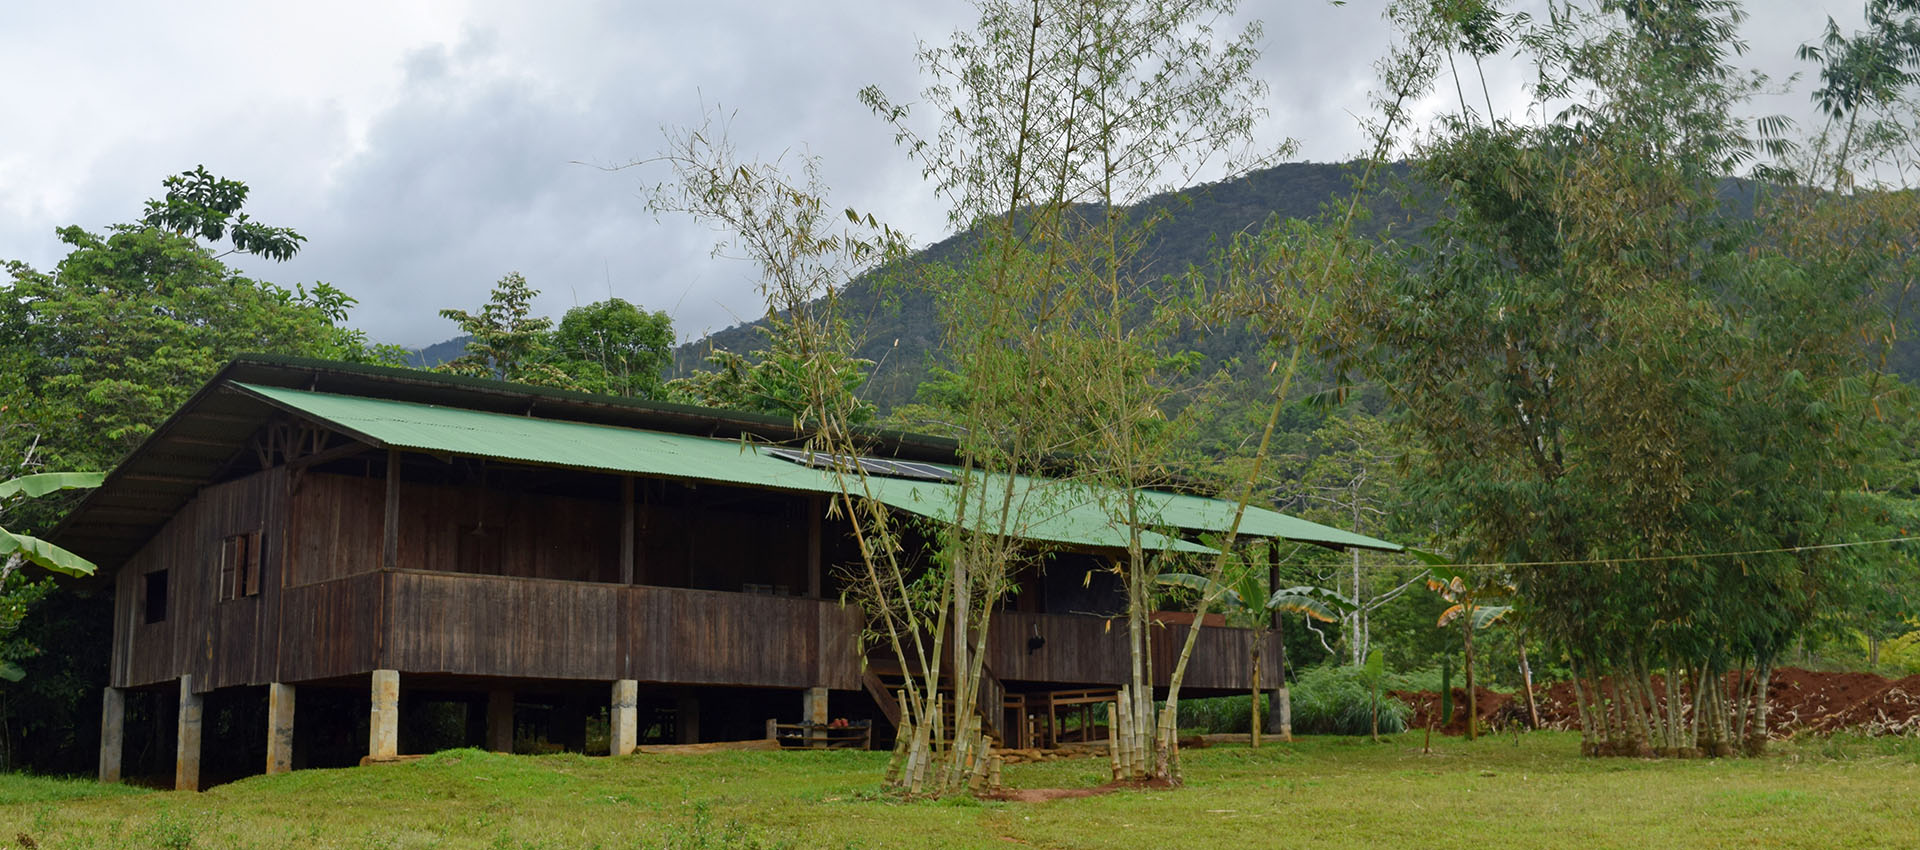 The spirit and the life of the people in Bukidnon